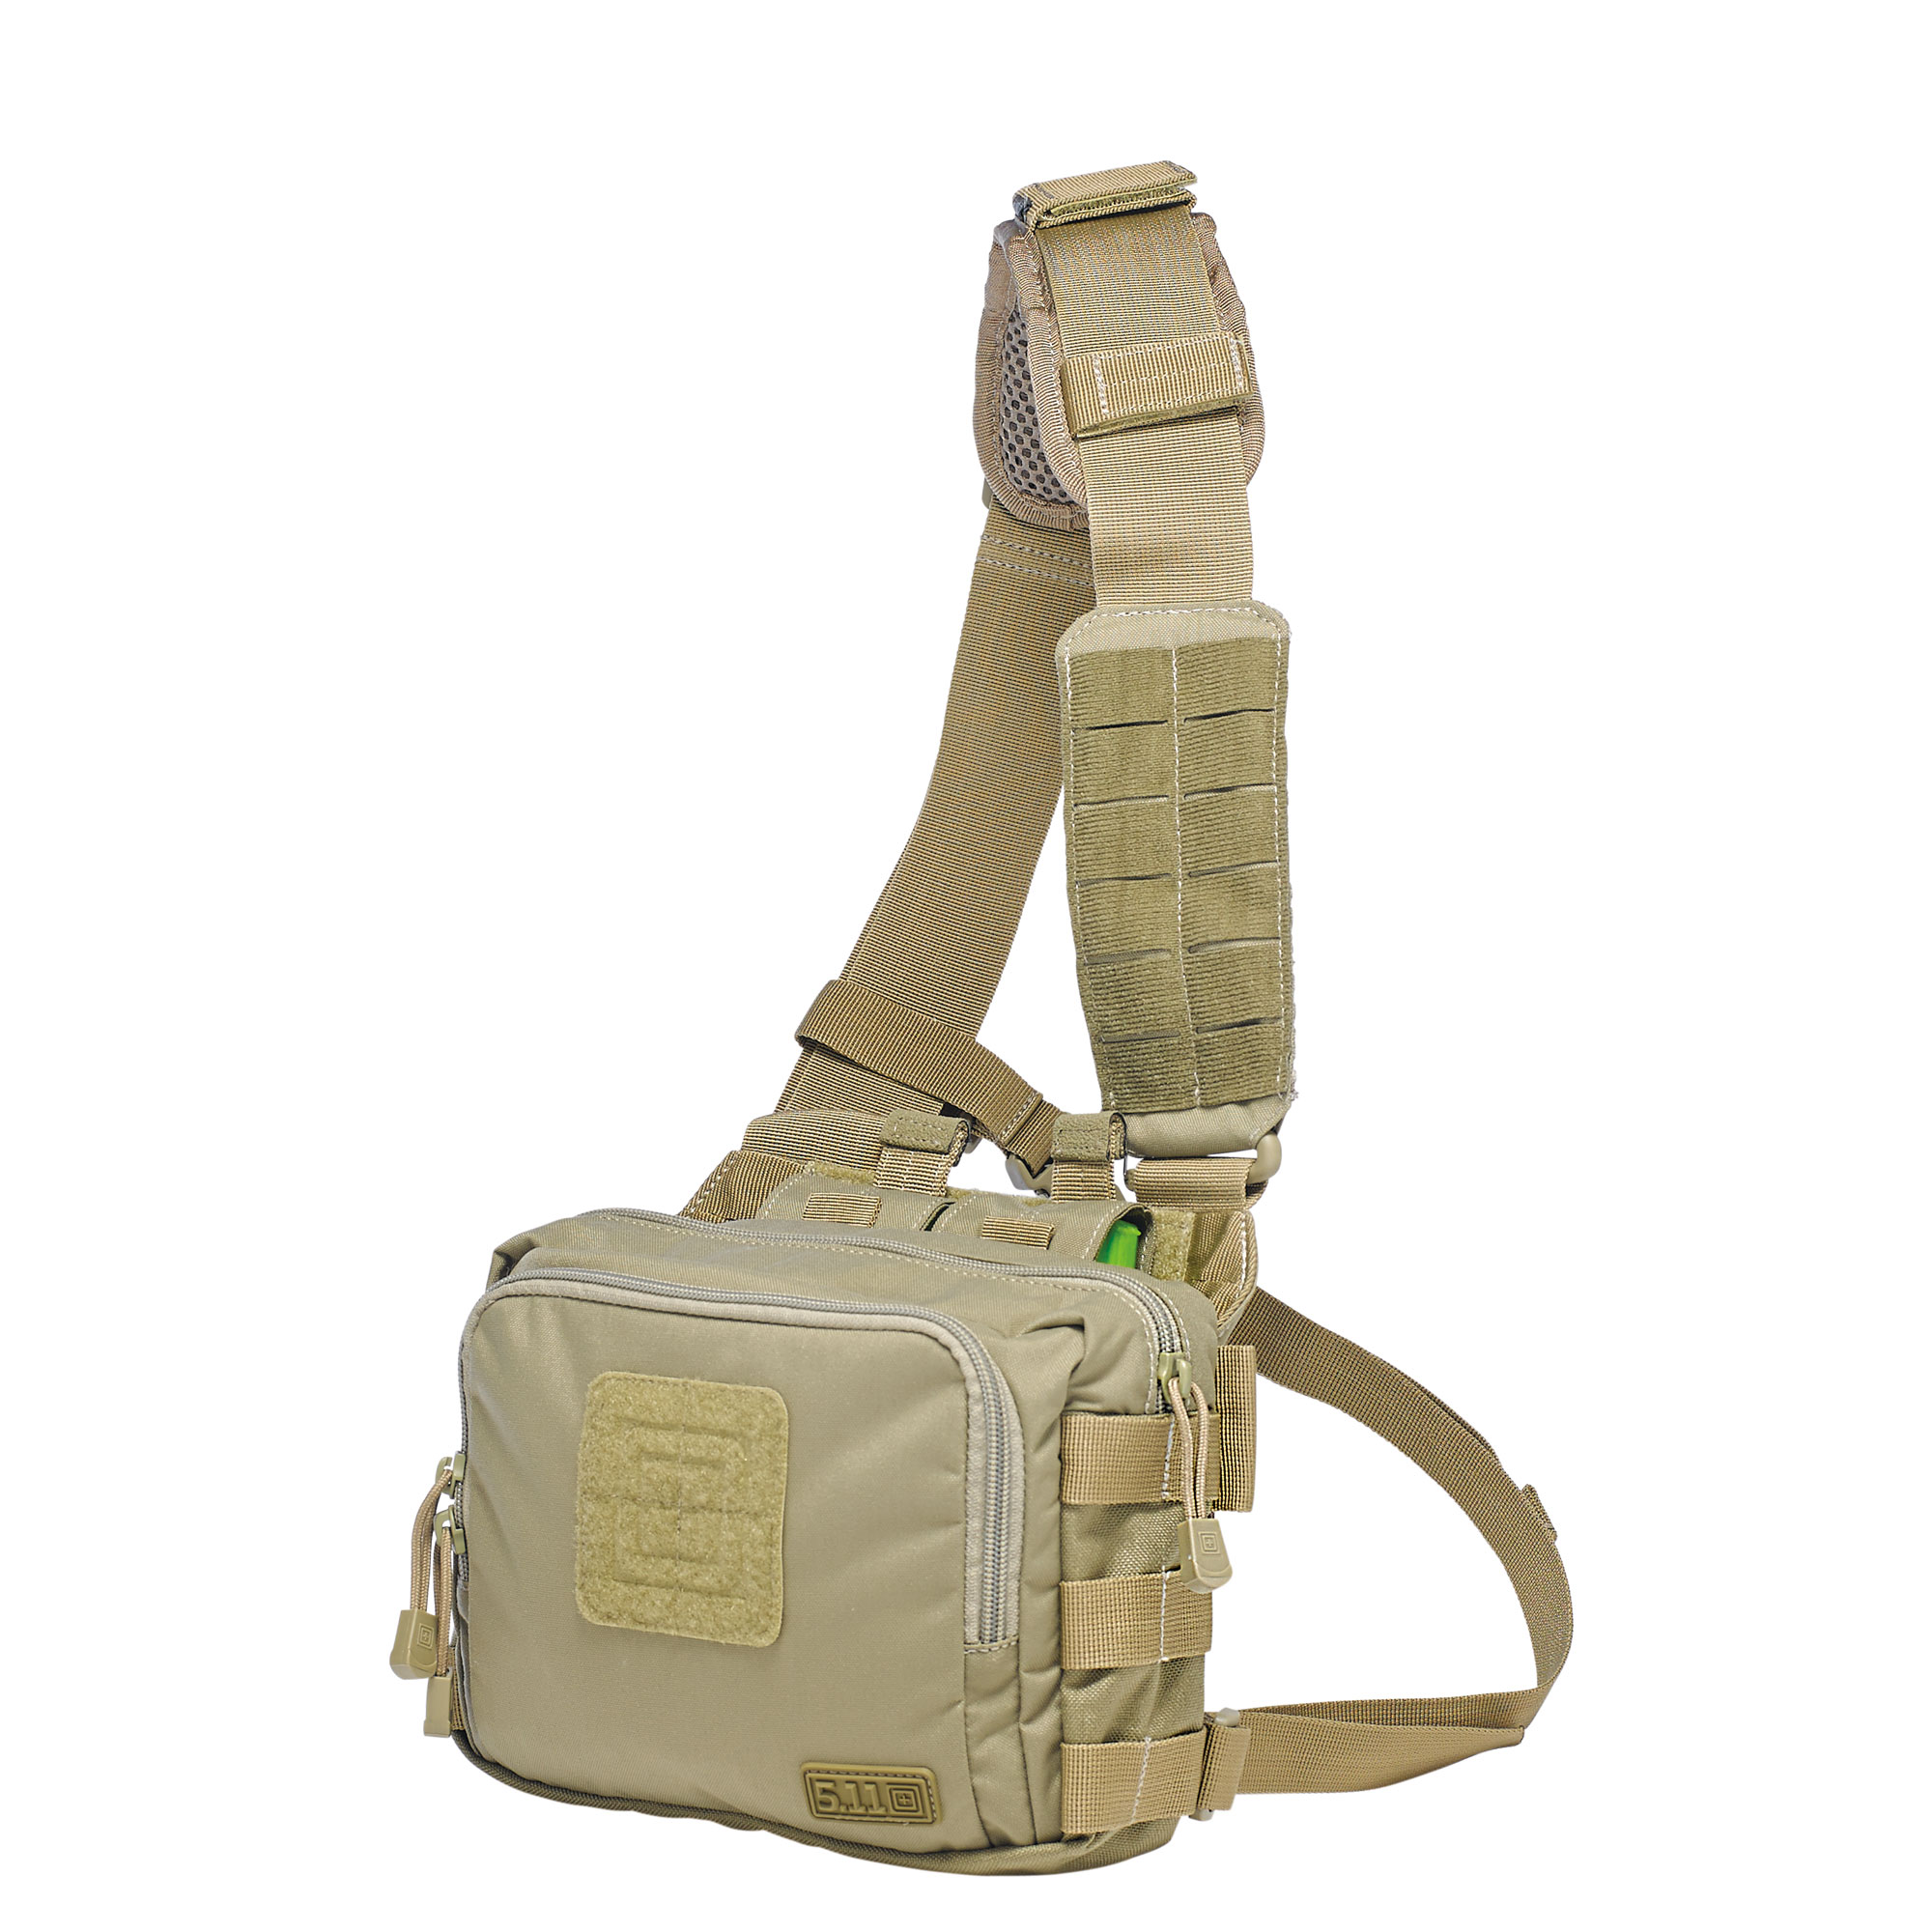 5.11-tactical-2-banger-bag-2.jpg